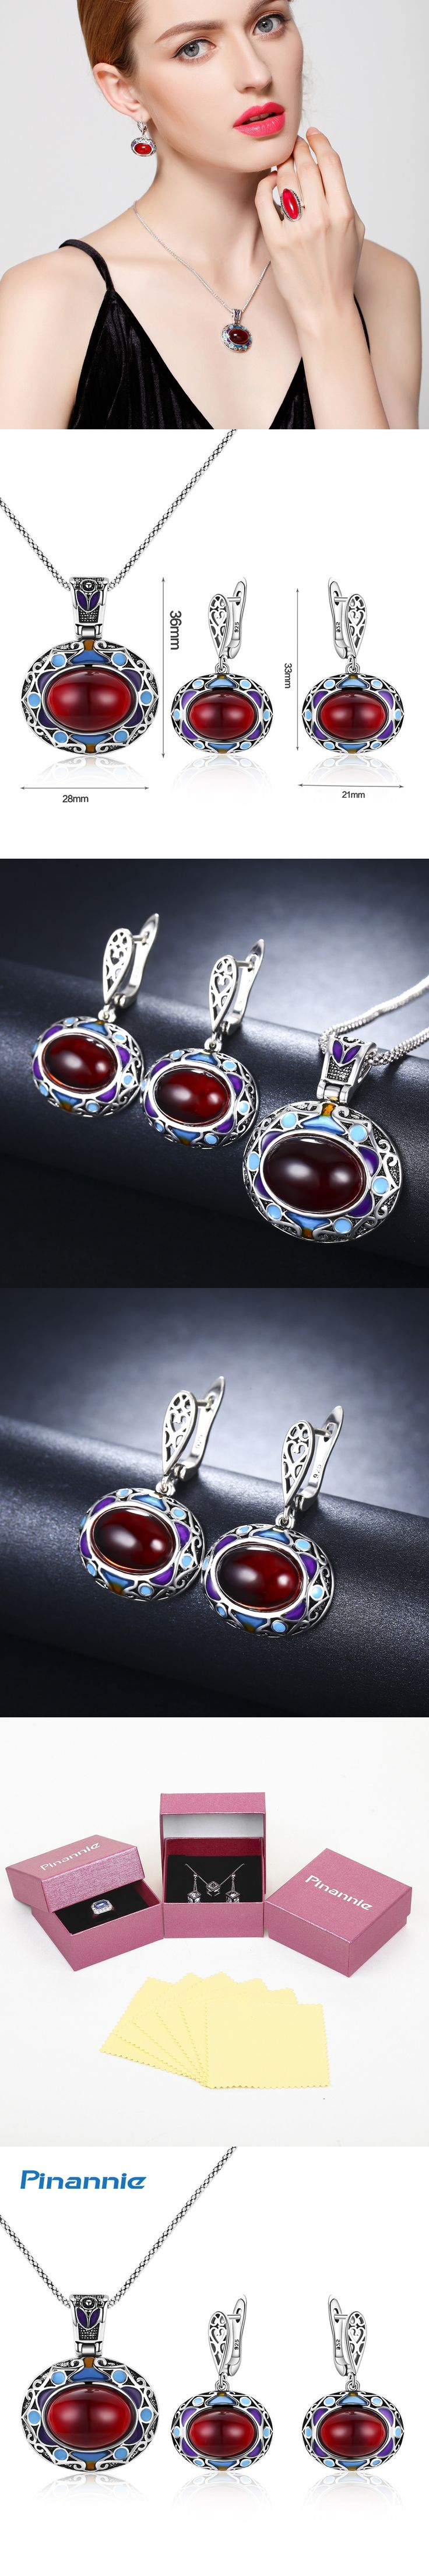 Pinannie Ethnic Jewelry Sets for Women Antique Silver Plate Color Jewellery Wedding Party Gifts